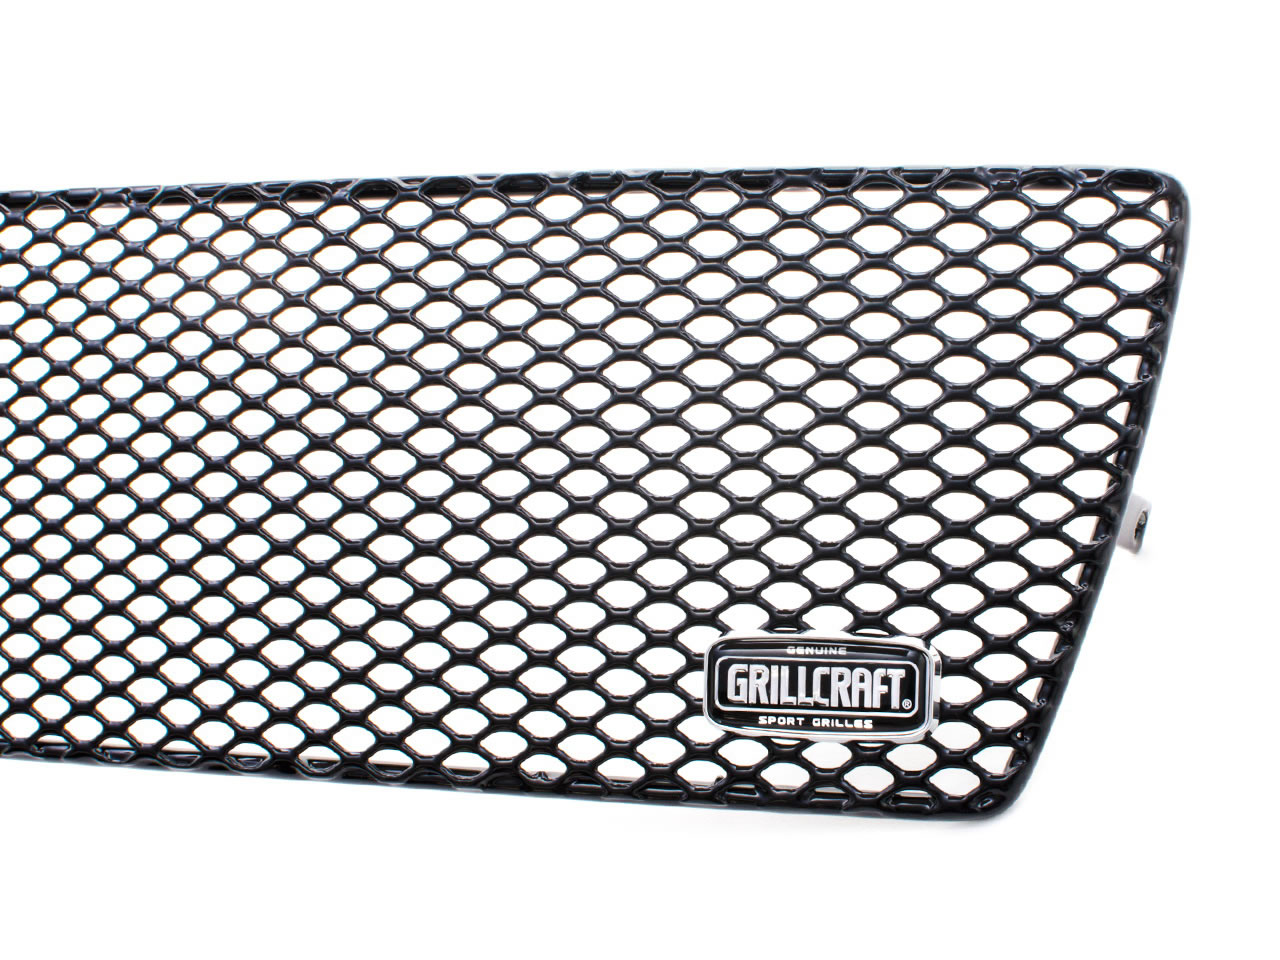 Grillcraft MX Series Black Steel Grille Fender Insert 2 piece Ford F-250 Super Duty Cabela&#39s 2009